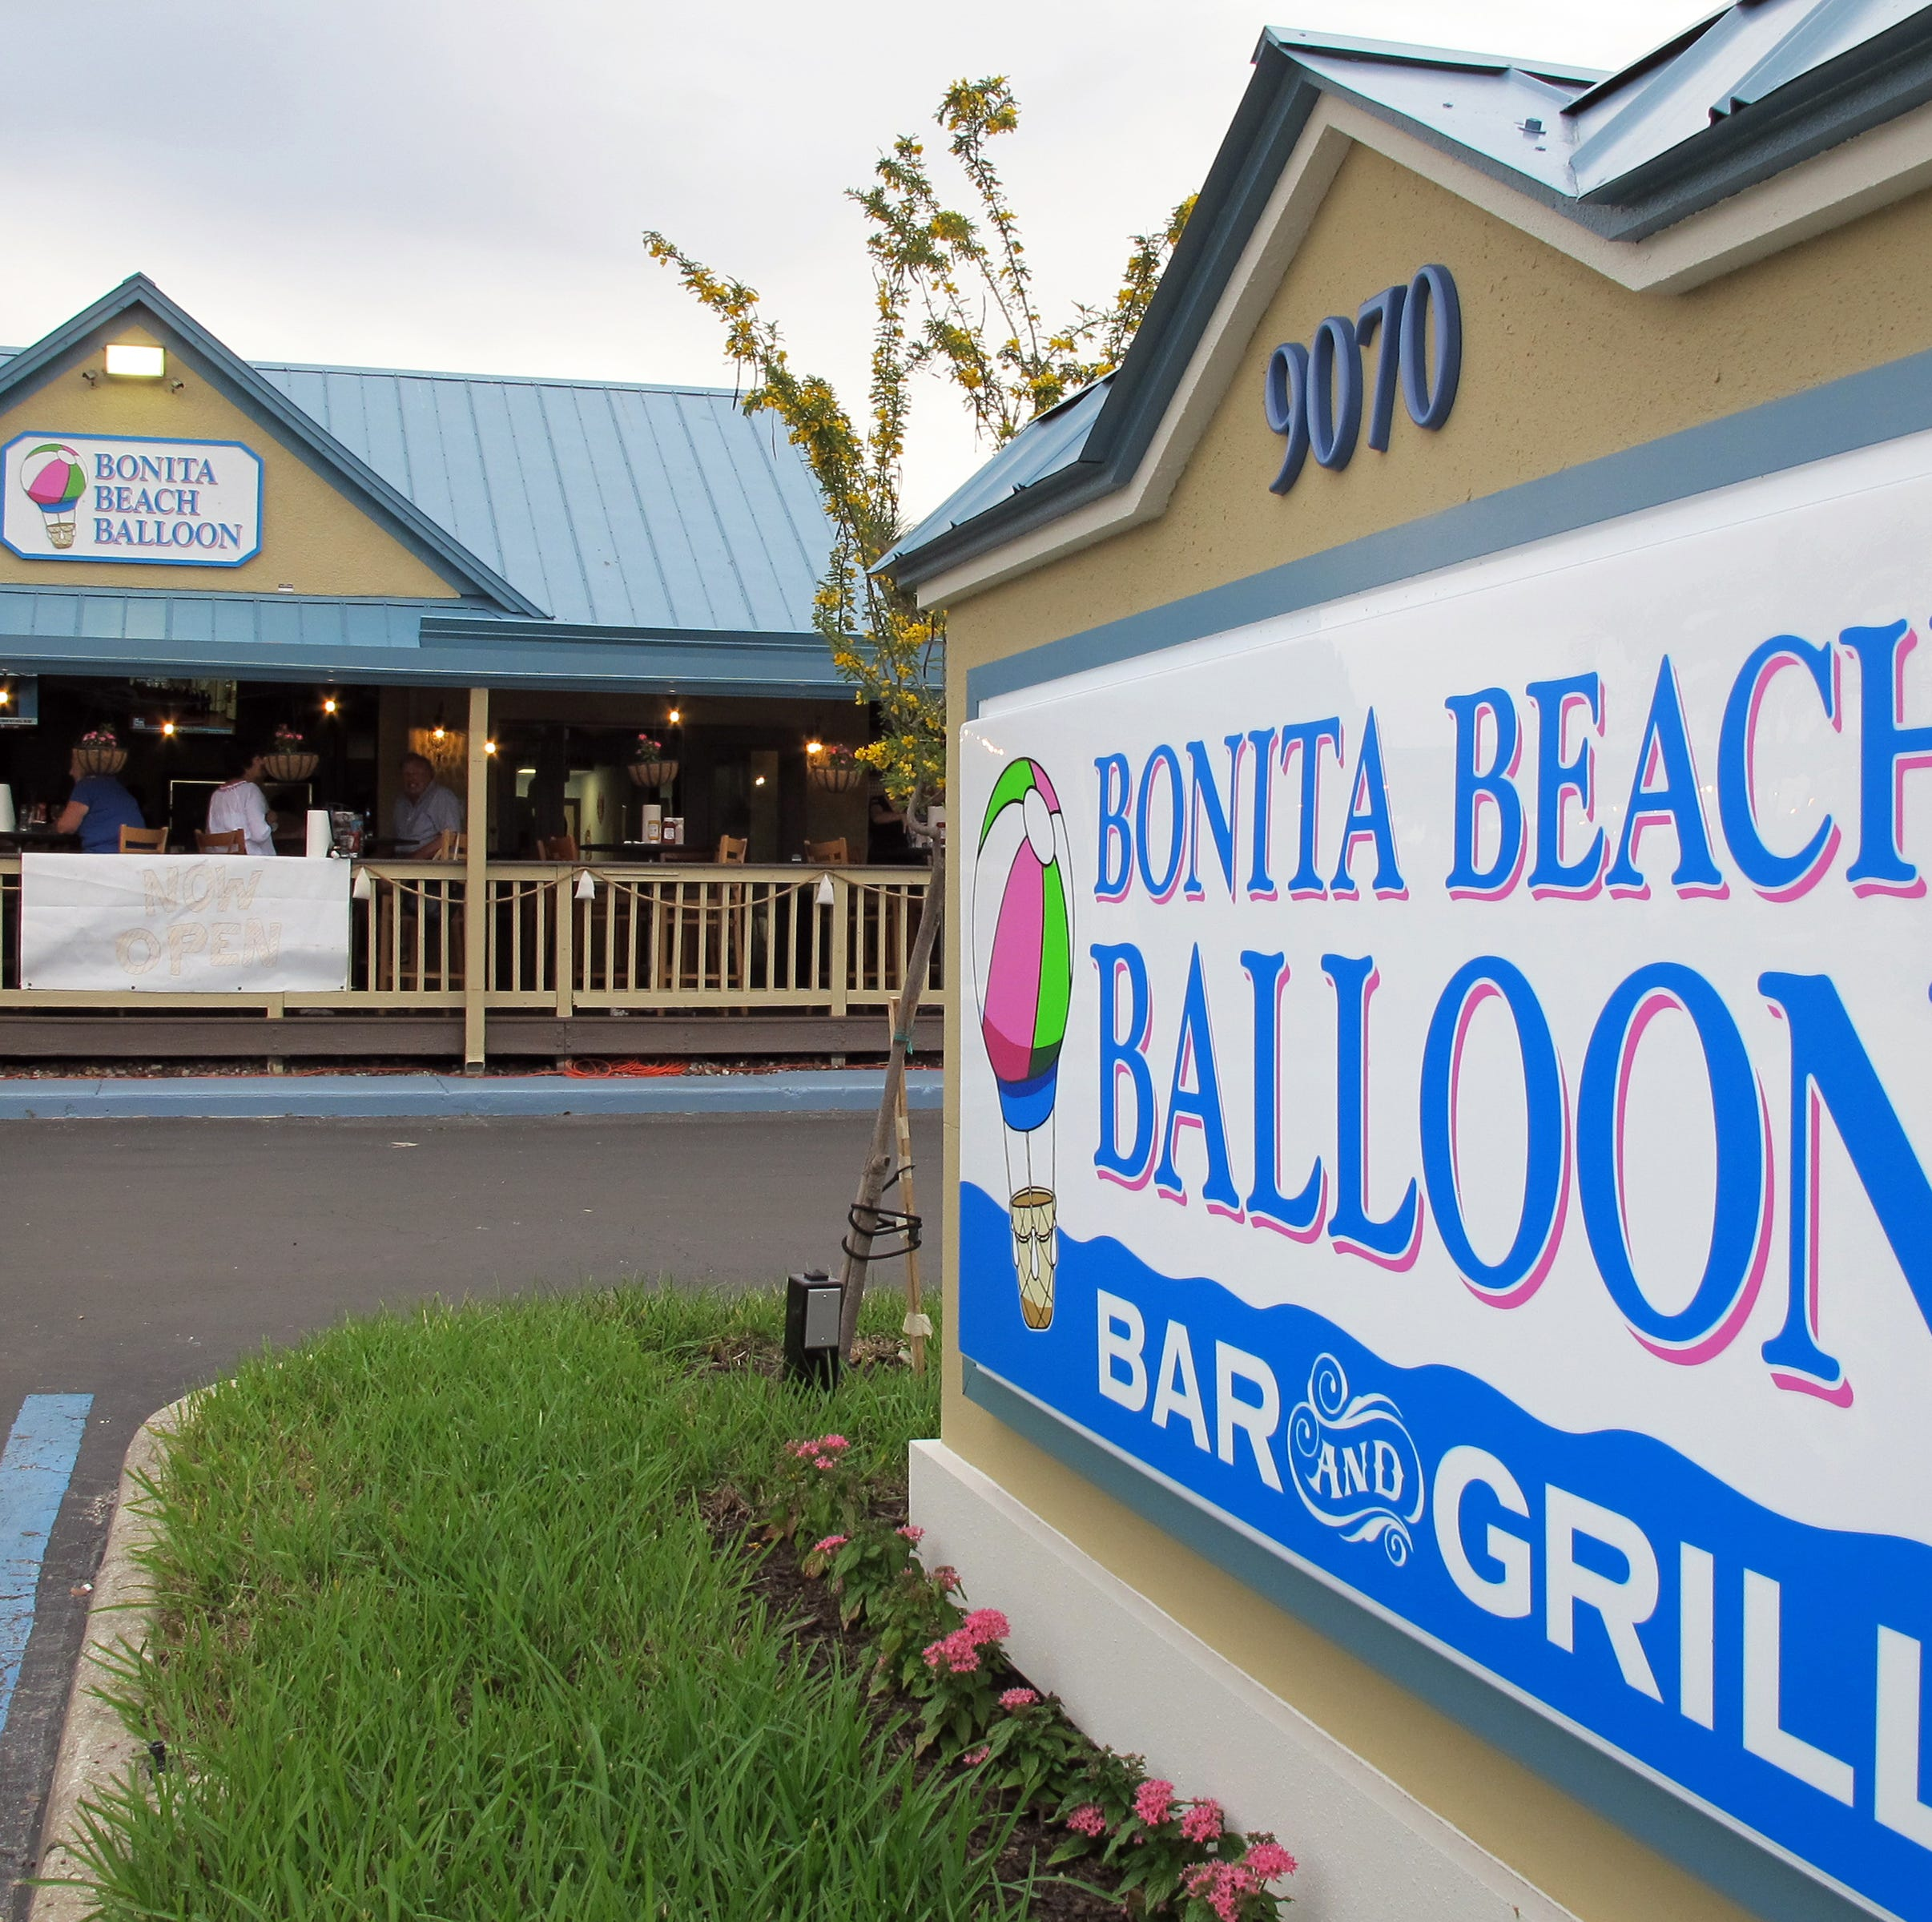 Kitchen fire closes Bonita Beach Balloon Bar & Grill Sunday